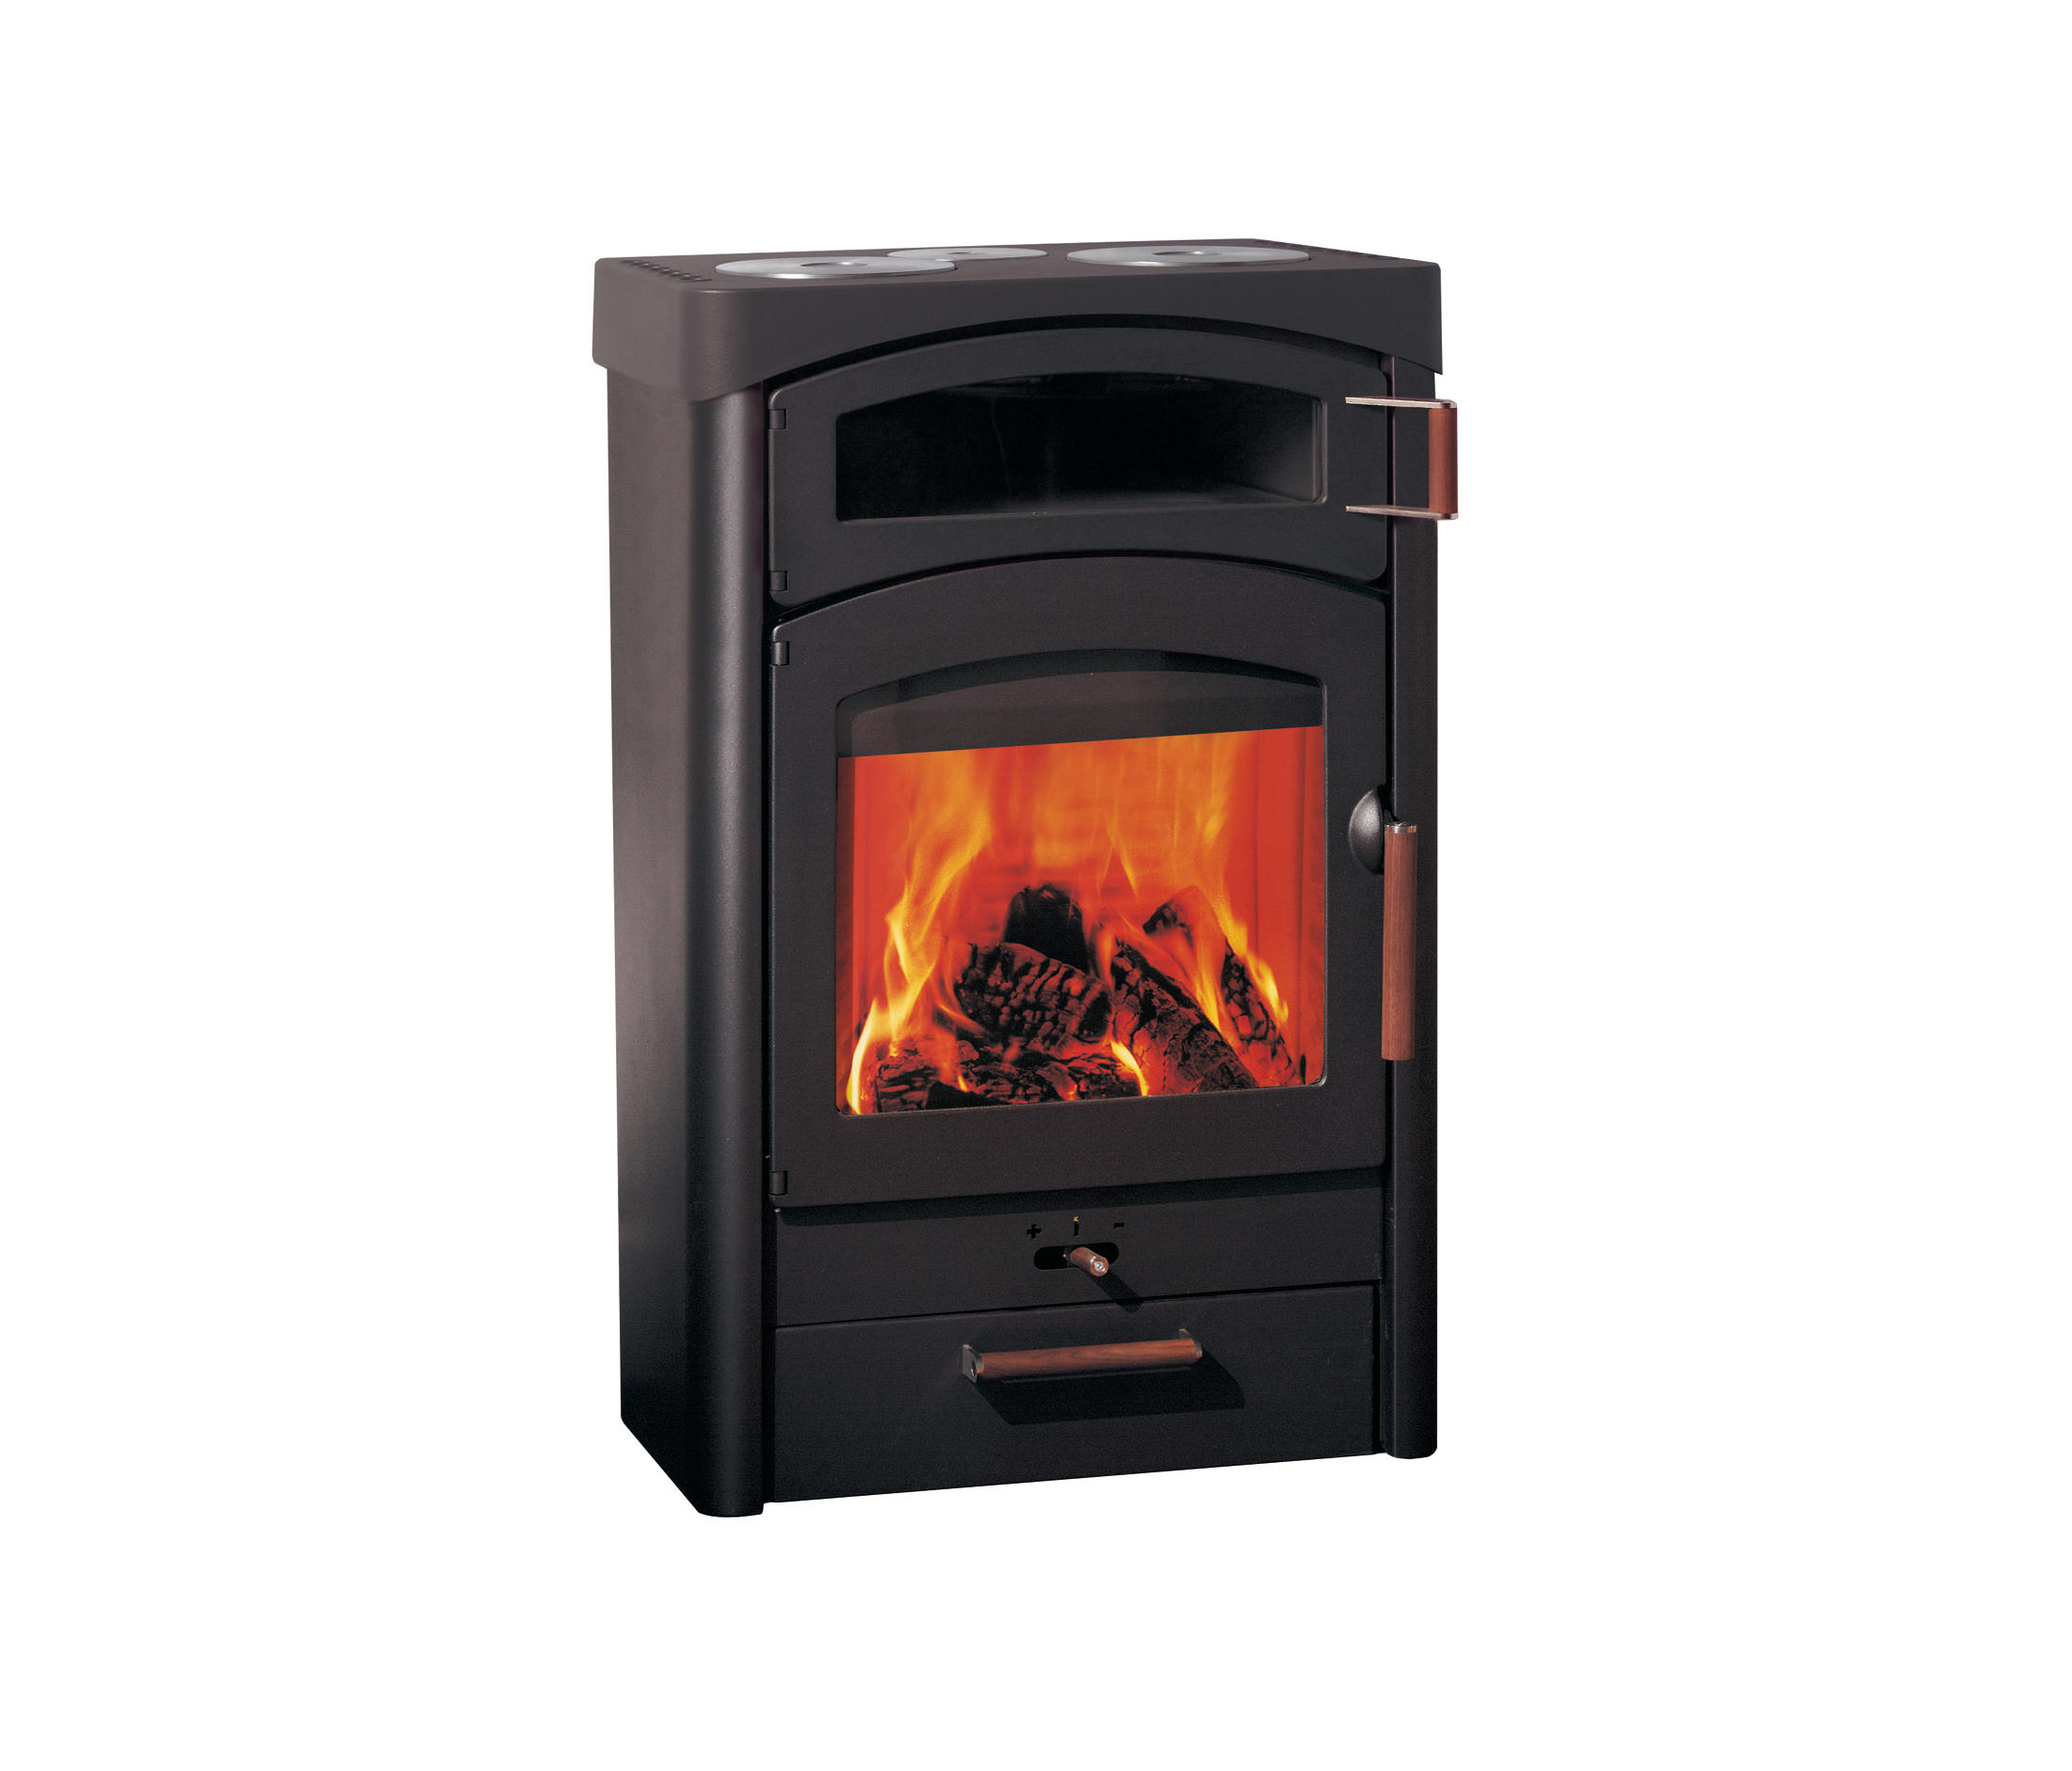 Kaminofen Austroflamm Pallas Back Pallas Back Stoves From Austroflamm Architonic